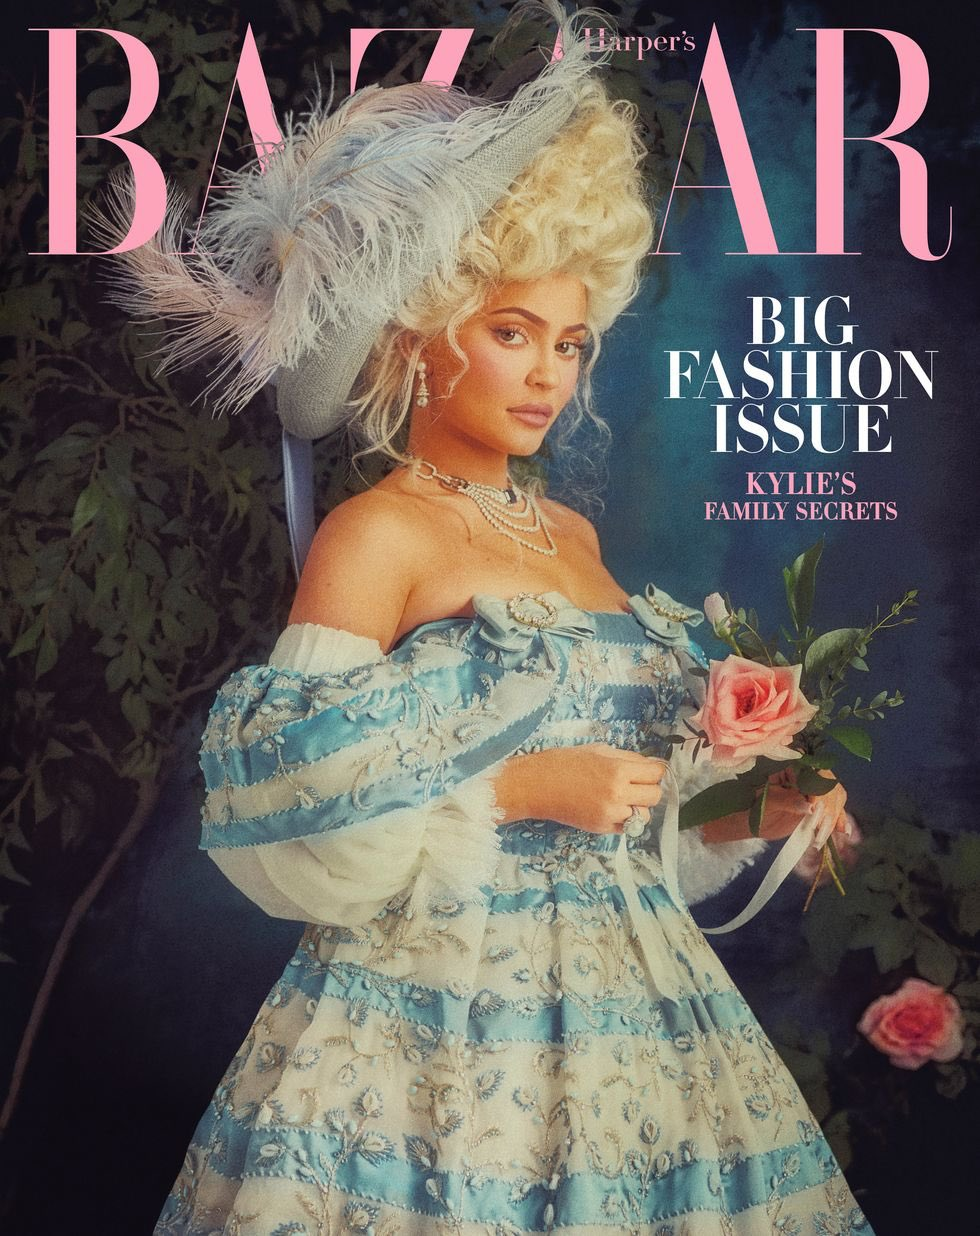 Kylie Jenner Is Marie Antoinette Meets Malibu Barbie for Harper's Bazaar March 2020